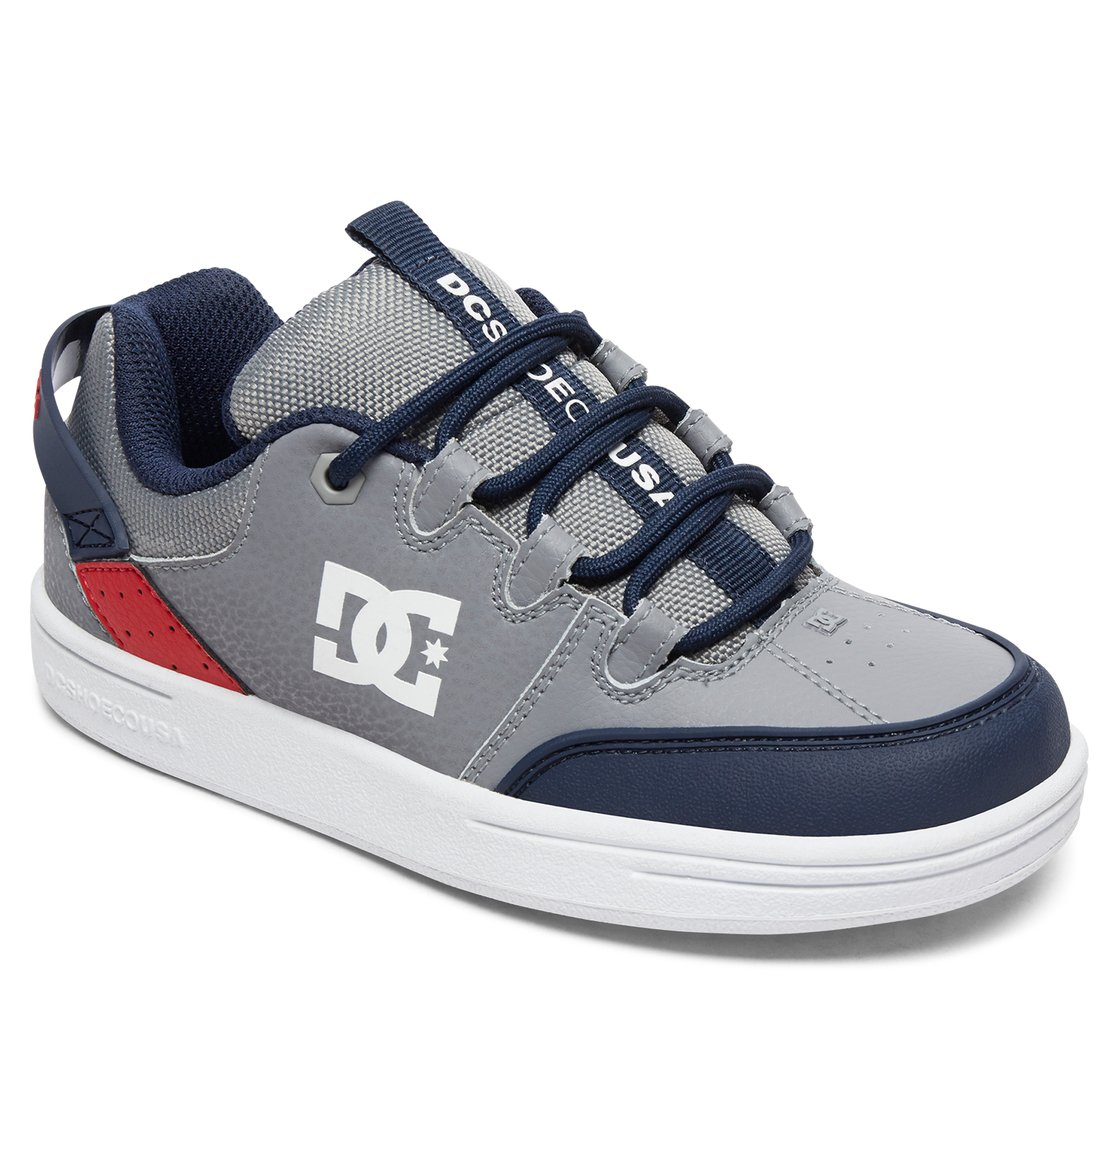 717603dffc2 DC-Shoes-Syntax-Shoes-for-Boys-ADBS100257 thumbnail 18